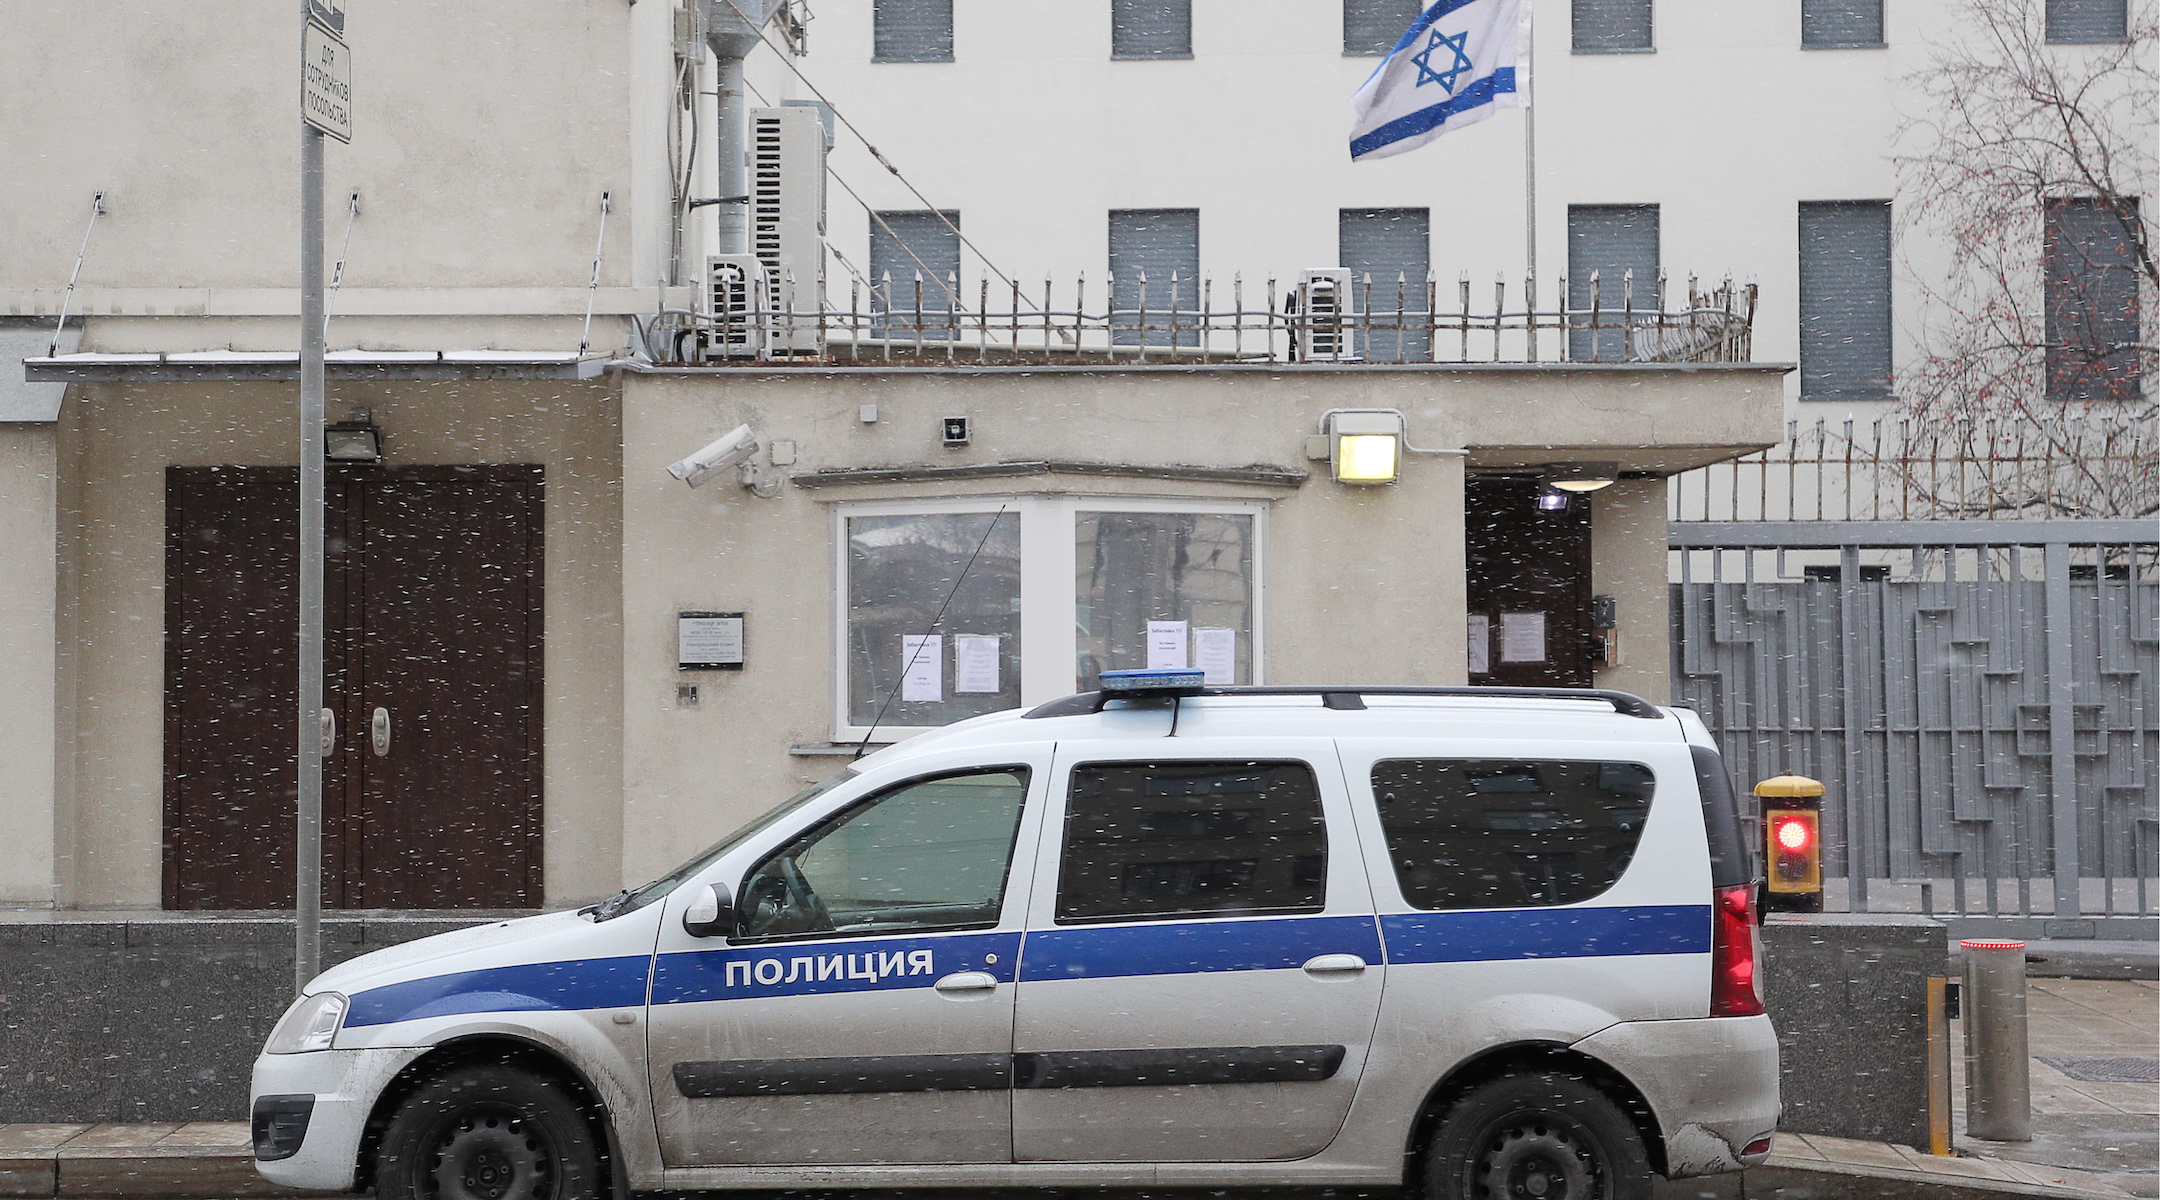 A police car sits outside the shuttered embassy of Israel in Moscow on October 30, 2019. (Gavriil Grigorov/Getty Images)